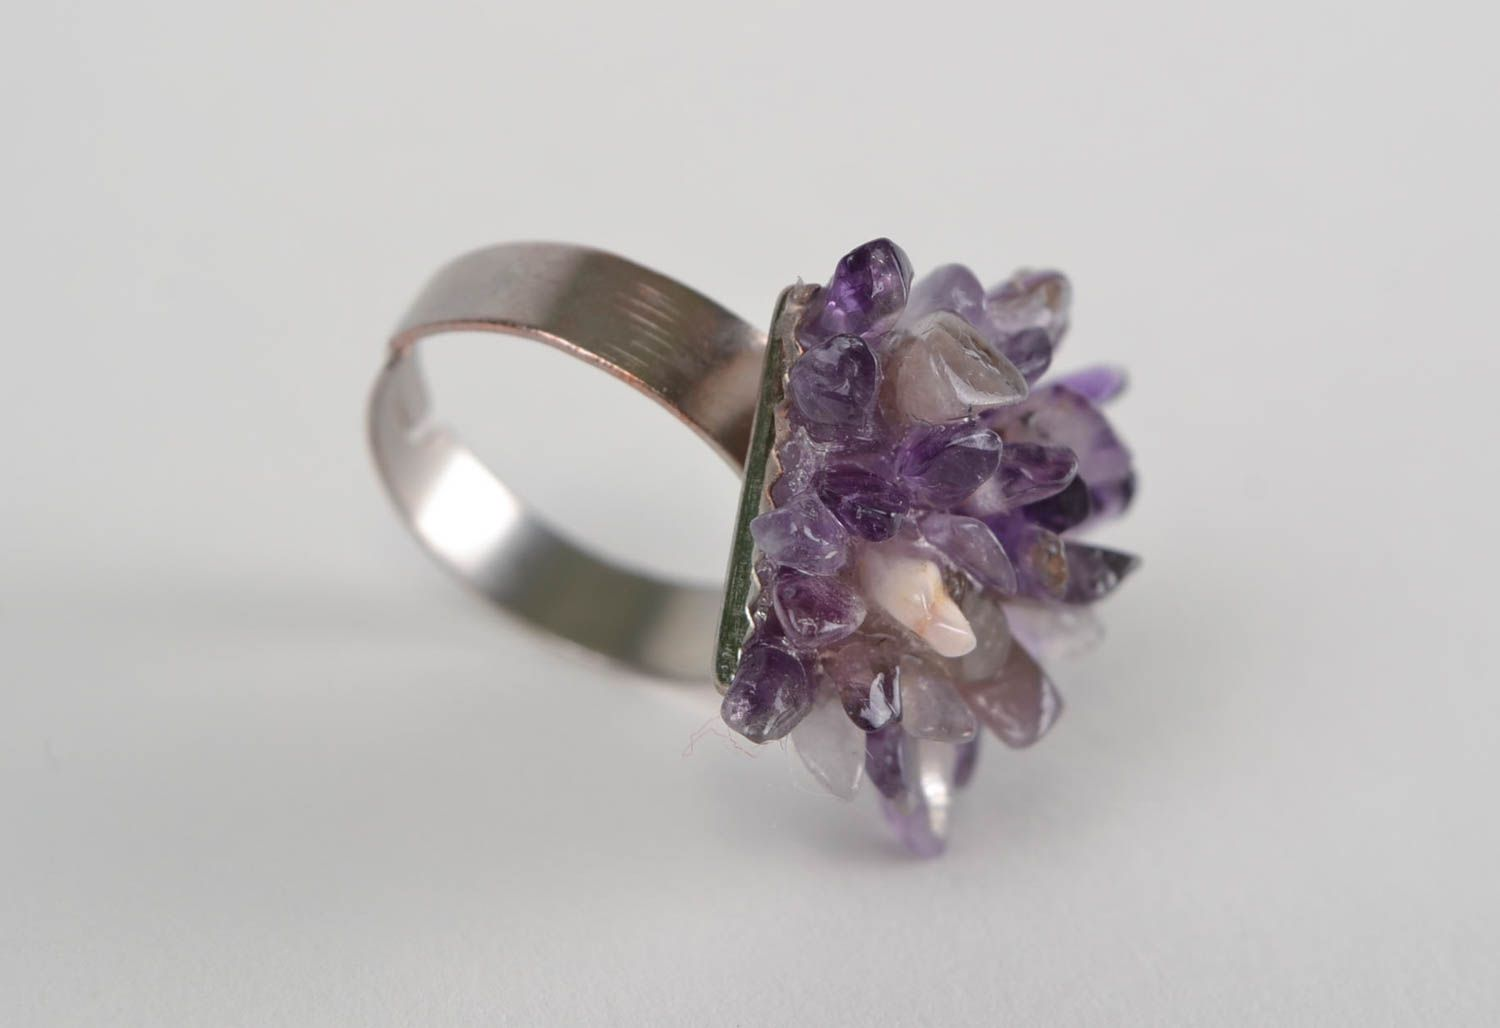 Square-shaped ring with natural stone amethyst beautiful handmade accessory photo 2